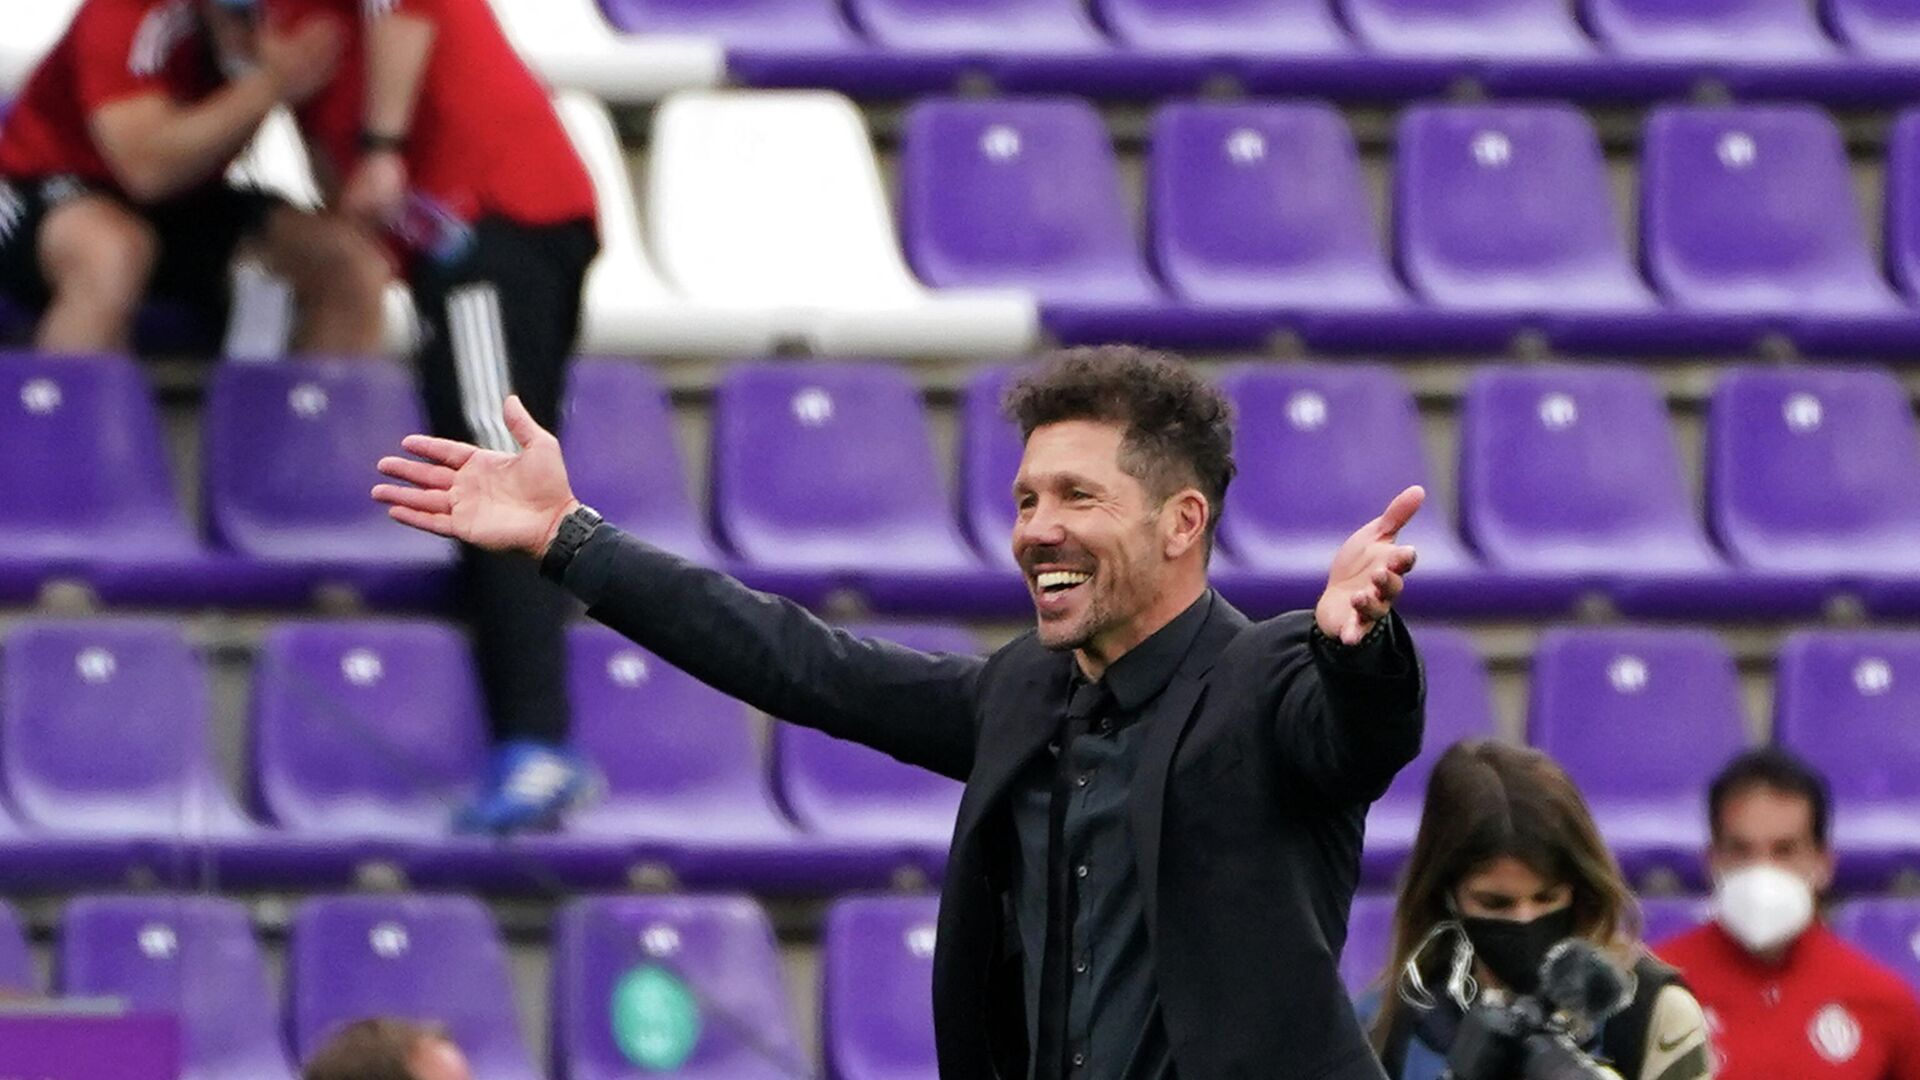 Atletico Madrid's Argentine coach Diego Simeone celebrates after winning the Spanish league football match against Real Valladolid FC and the Liga Championship title at the Jose Zorilla stadium in Valladolid on May 22, 2021. (Photo by CESAR MANSO / AFP) - РИА Новости, 1920, 23.05.2021